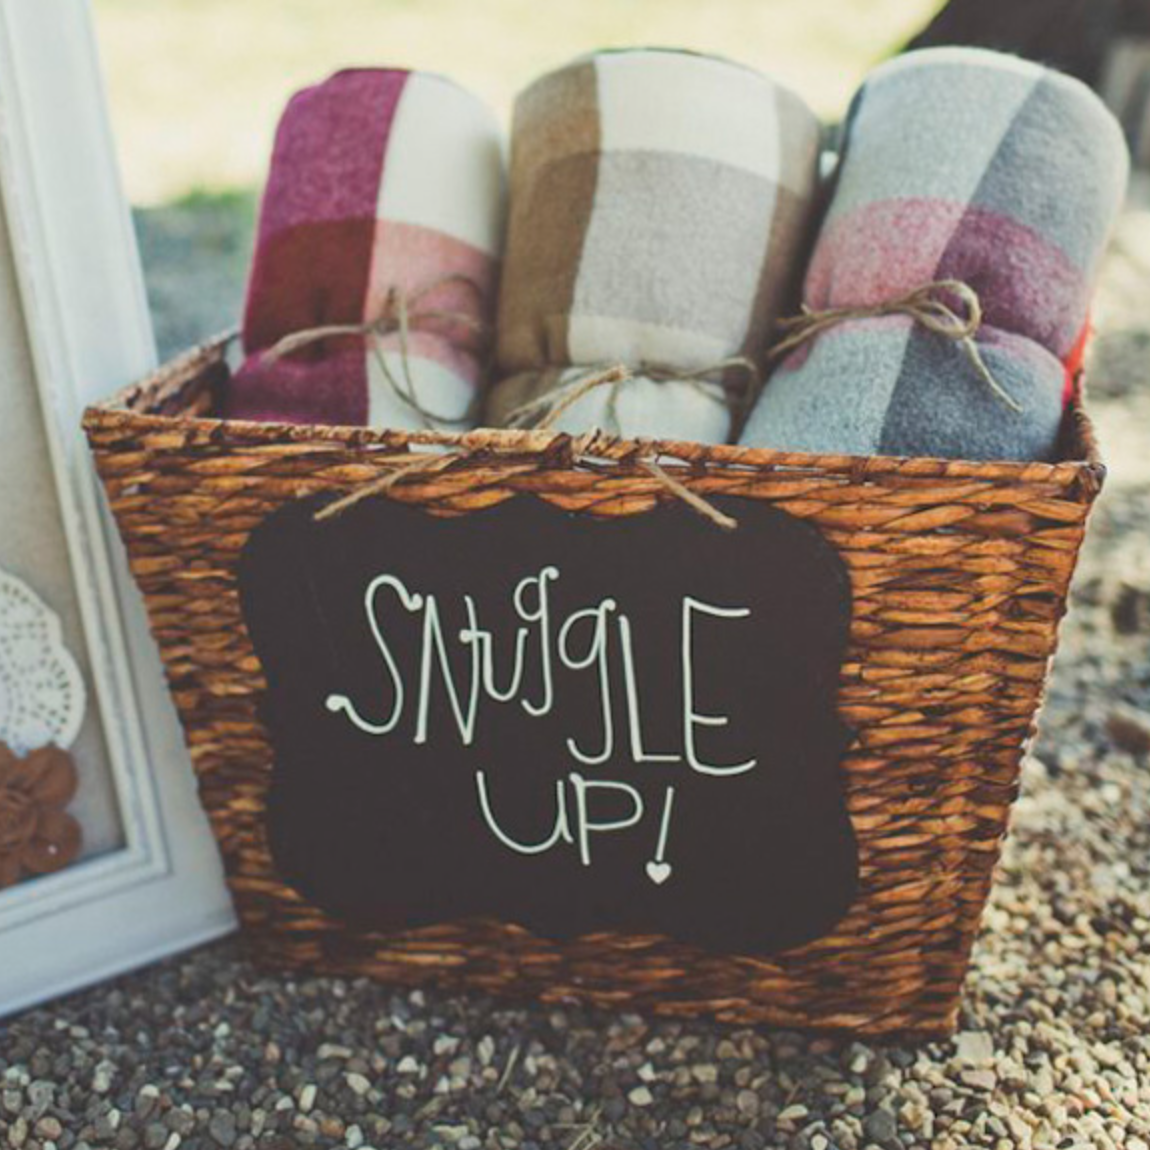 Lovely blanket idea for chilly guests!  Photo: Paper and Lace